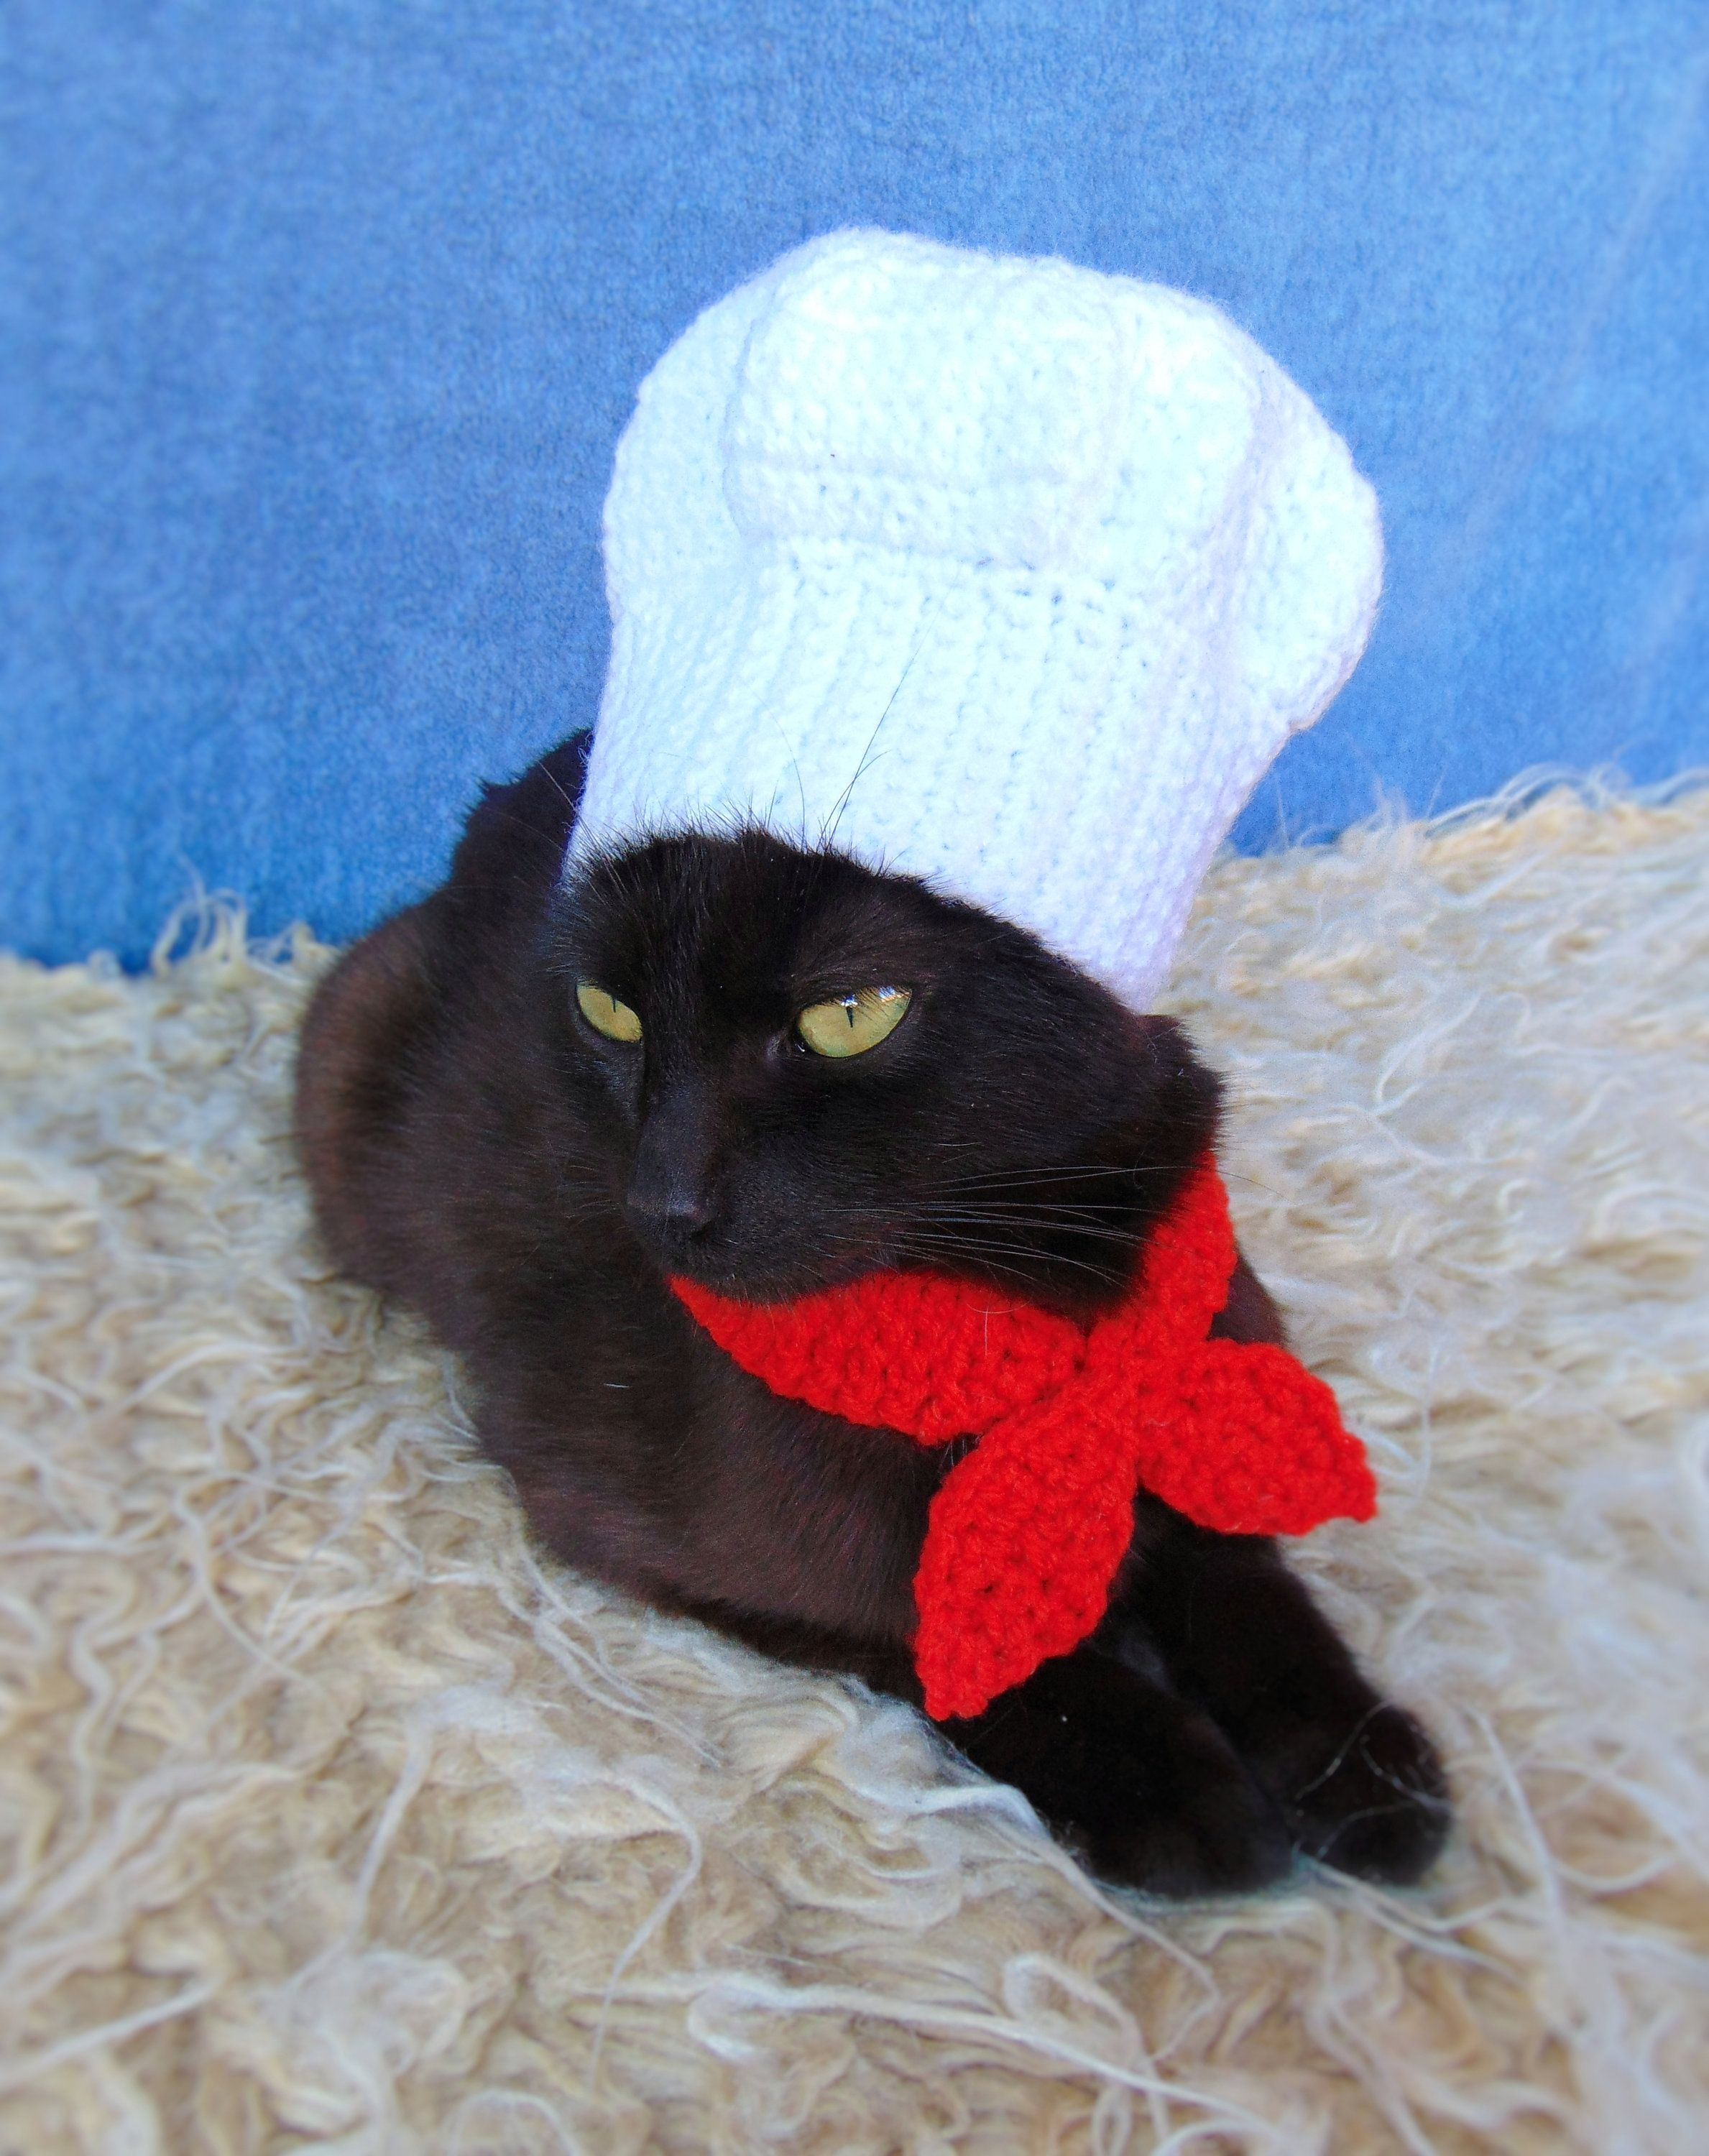 Chef Hat For Cat Chef Pet Costume Halloween Kitten Outfit Etsy In 2020 Pet Costumes Cat Accessories Cat Harness